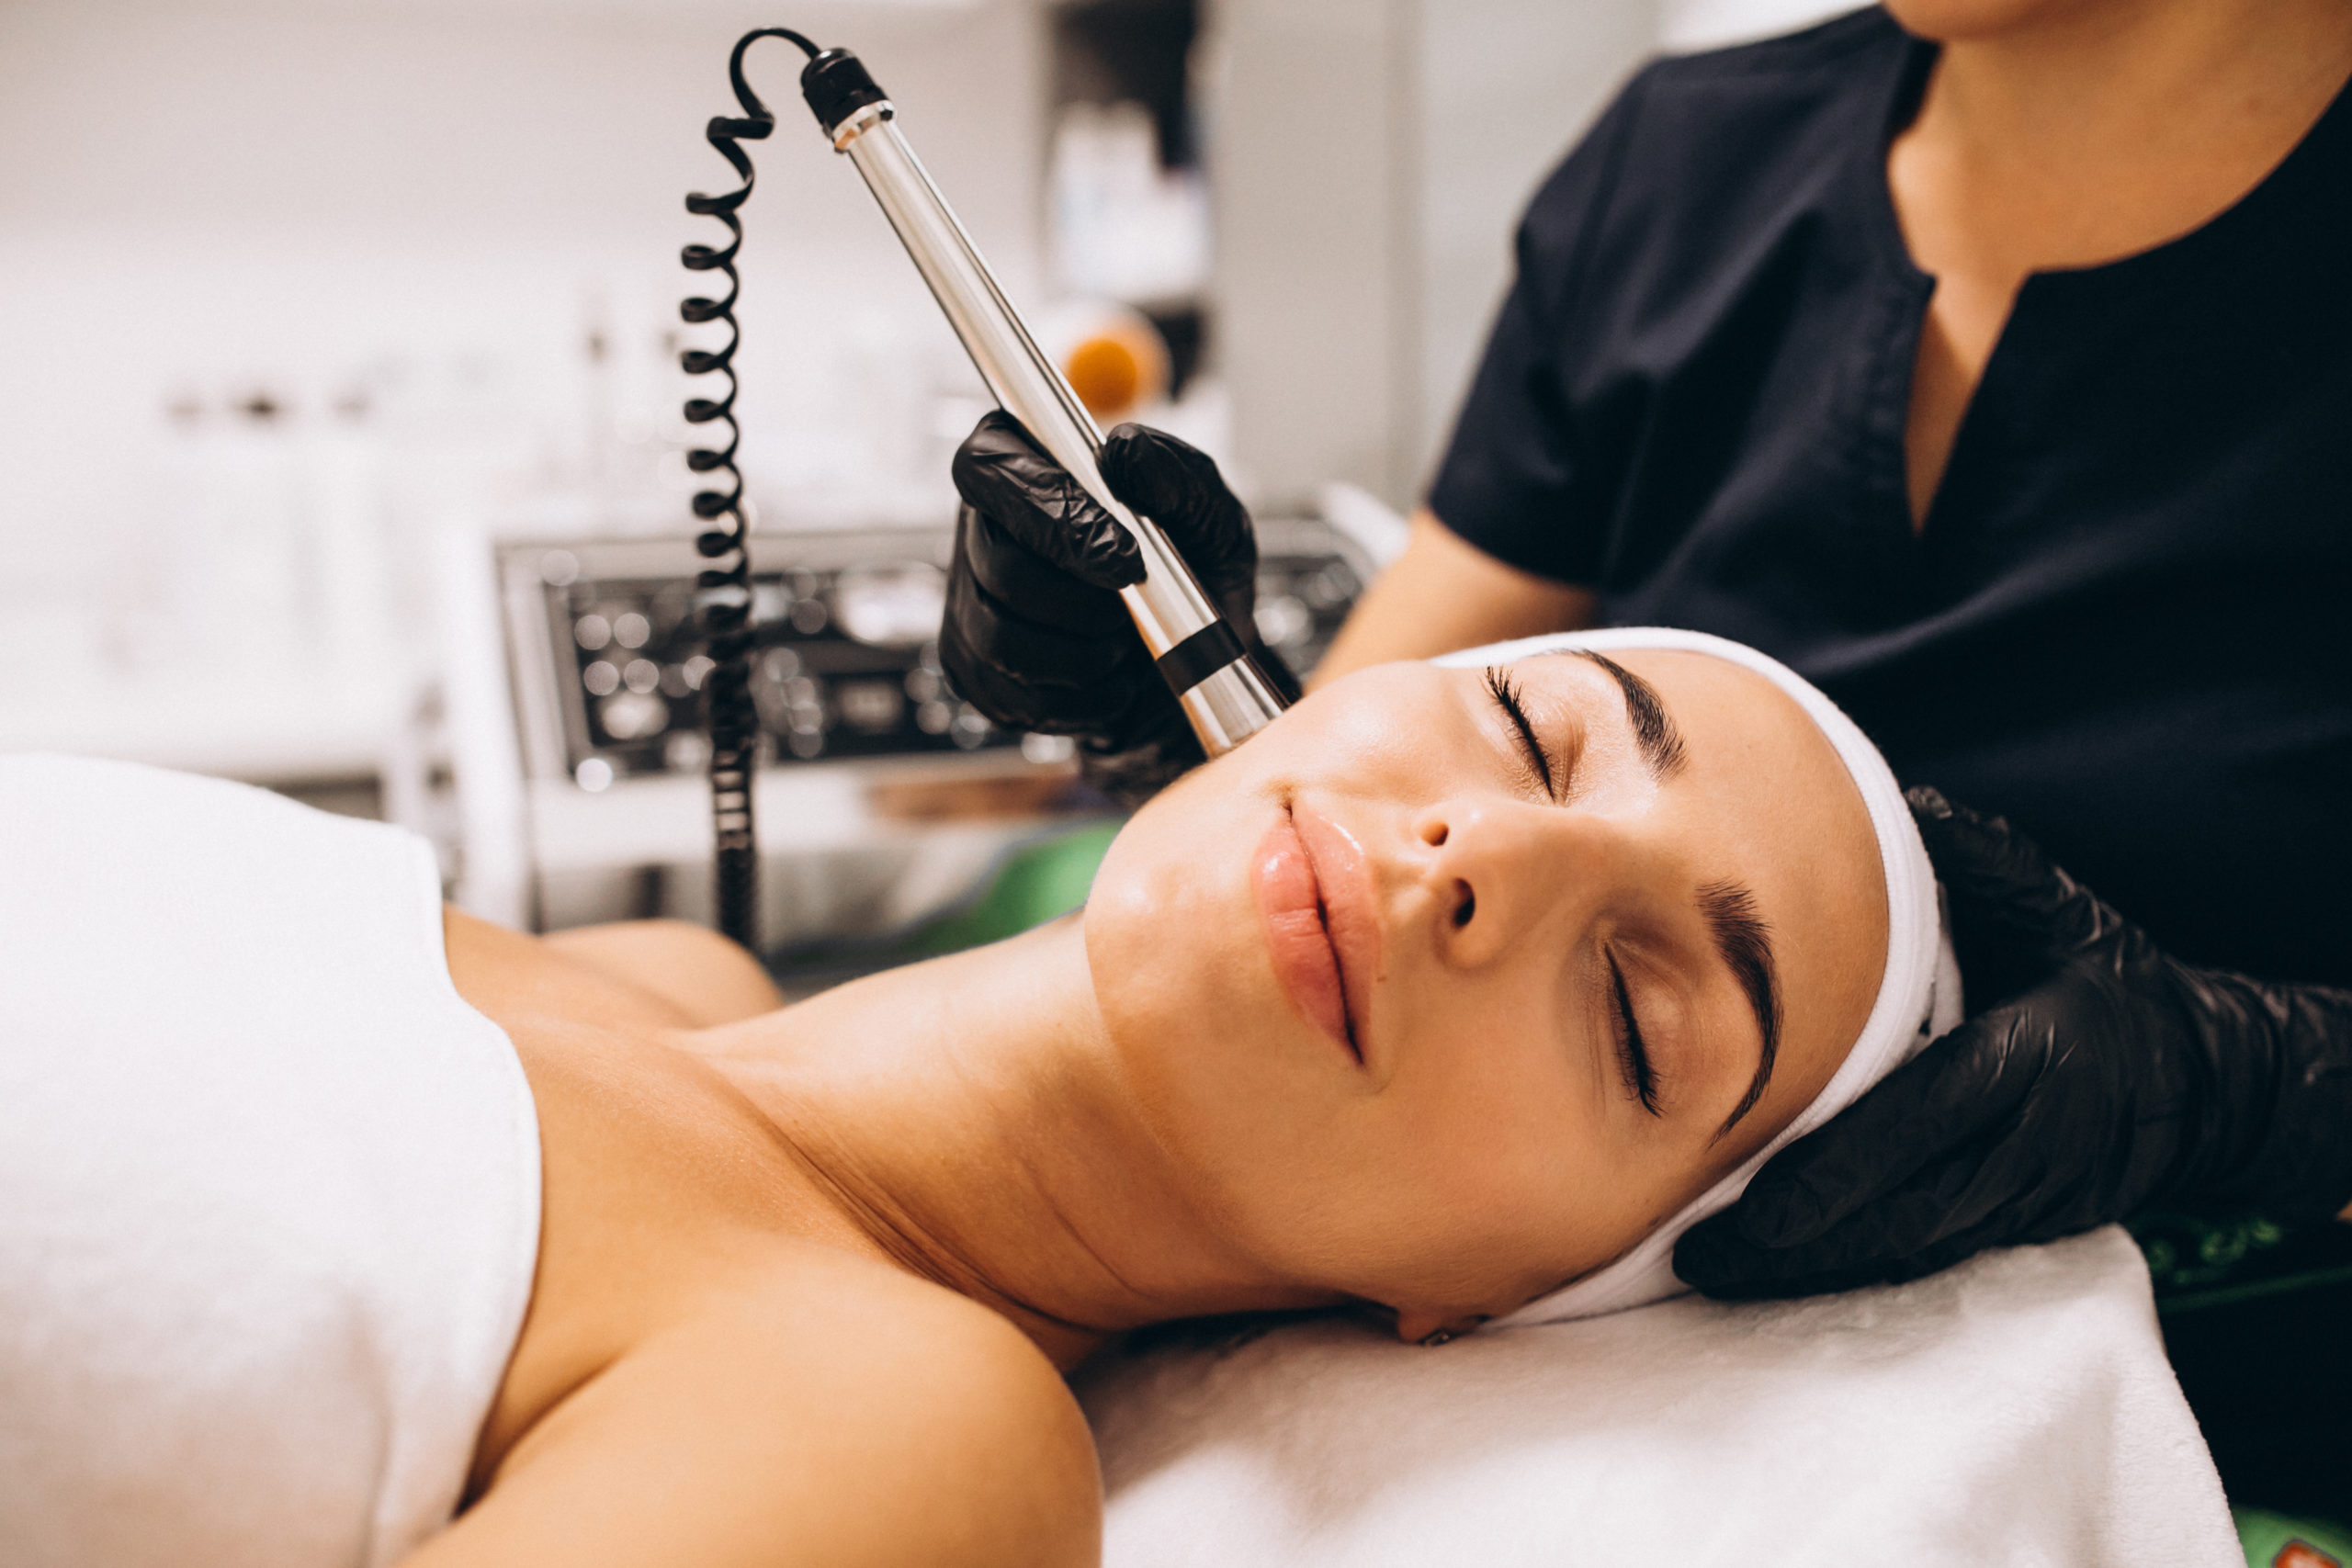 Radio Frequency Energy Tightens The Skin